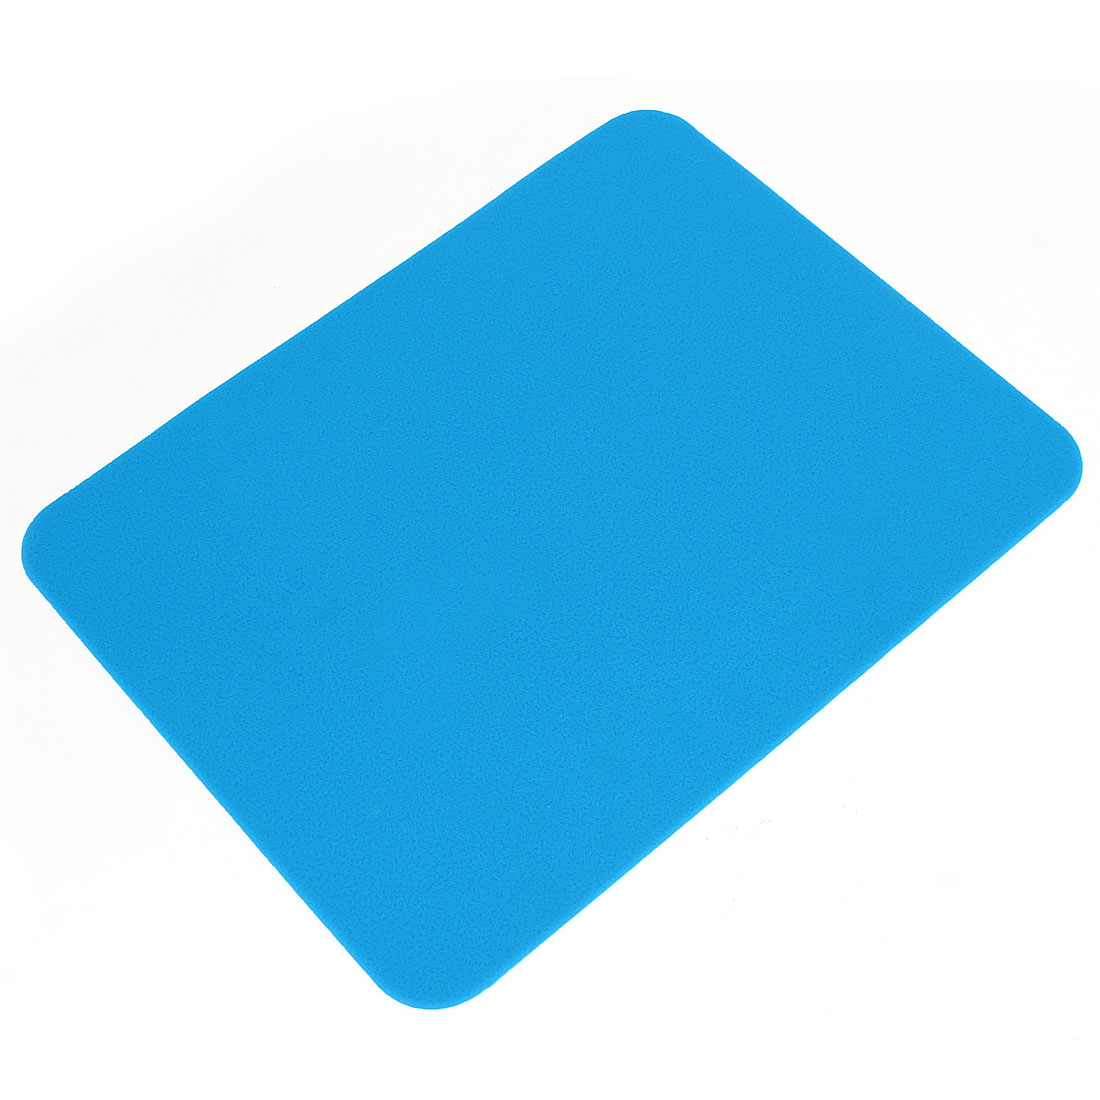 Silicone Non Slip Heat Resistance Cup Mat Pad Desk Table Coaster Holder Blue